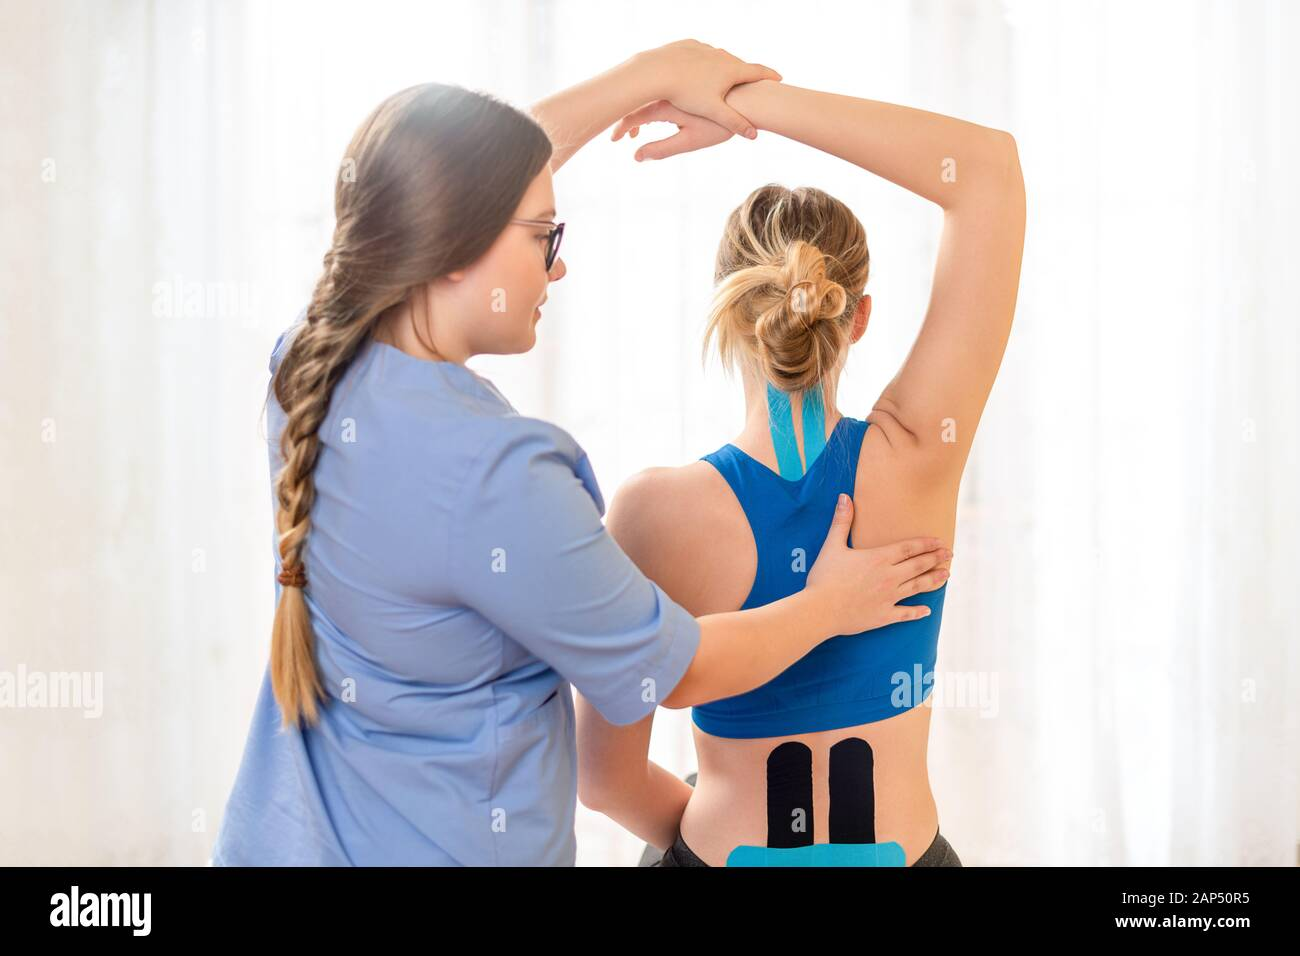 Young female patient wearing kinesio tape on her back and neck exercising with a professional physical therapist. Kinesiology, physical therapy, rehab Stock Photo